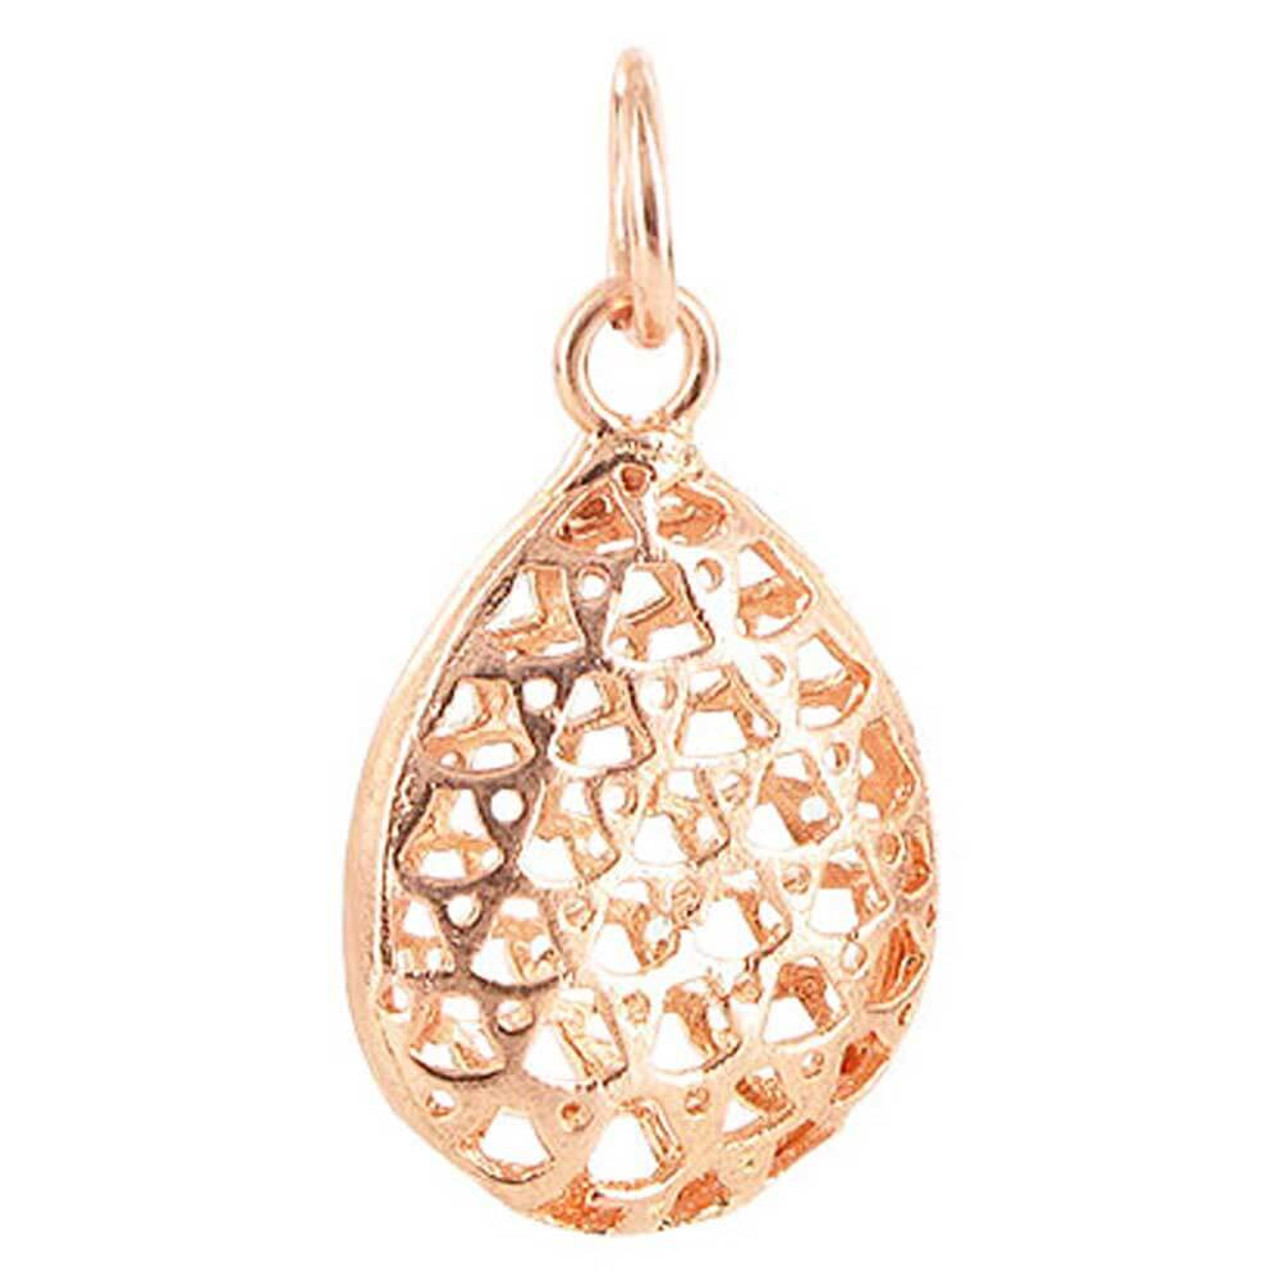 Copper Finish 17mm x 22mm Oval Shaped Intricate Polish Finished Dangle Pendant #RSPC002